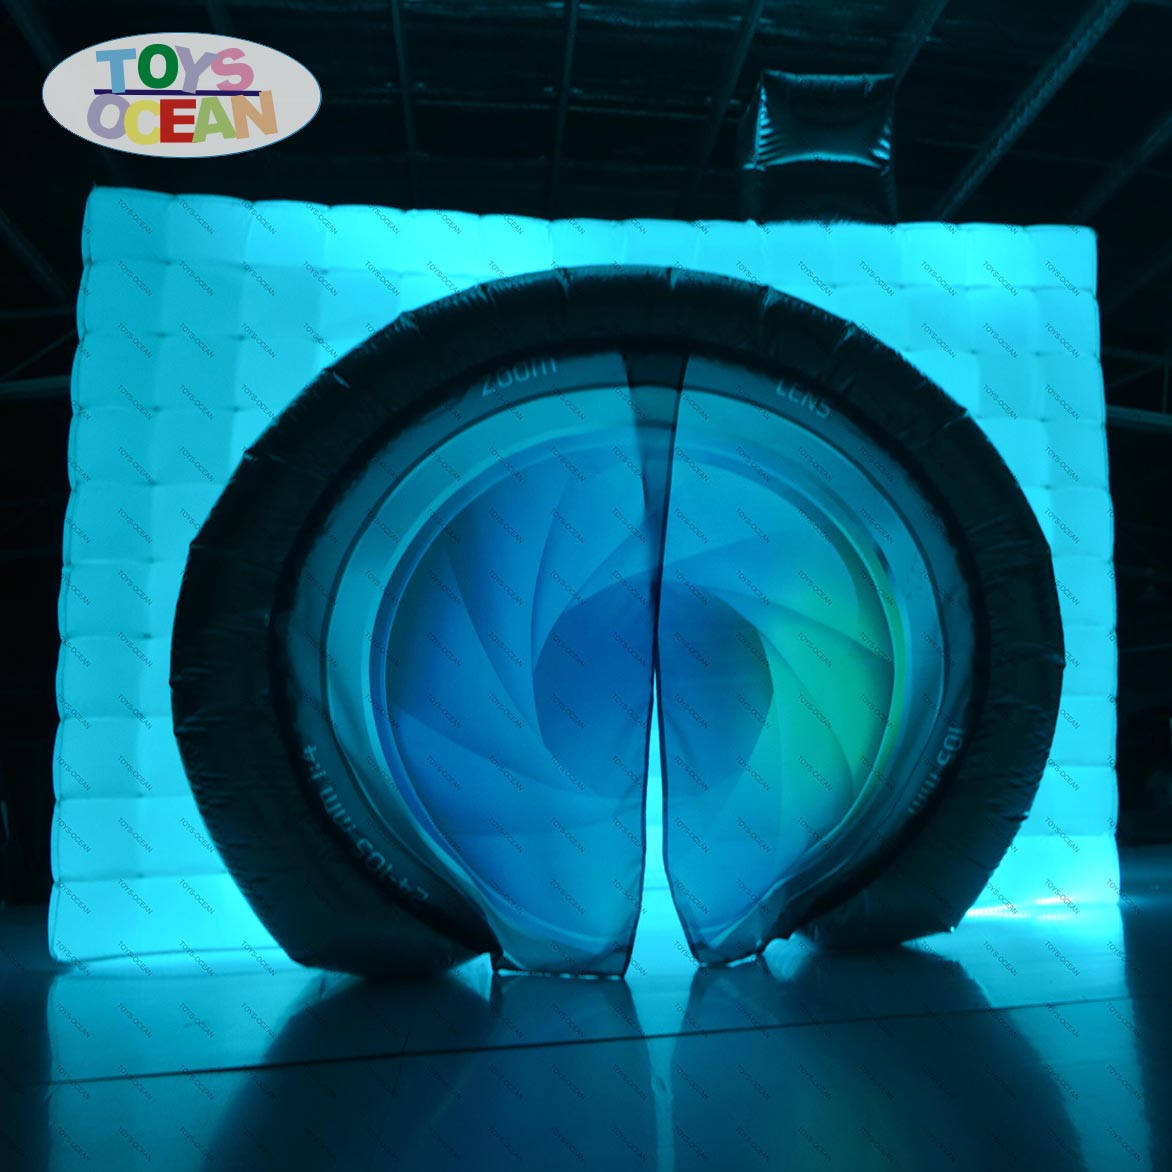 LED inflatable photo booth with camera